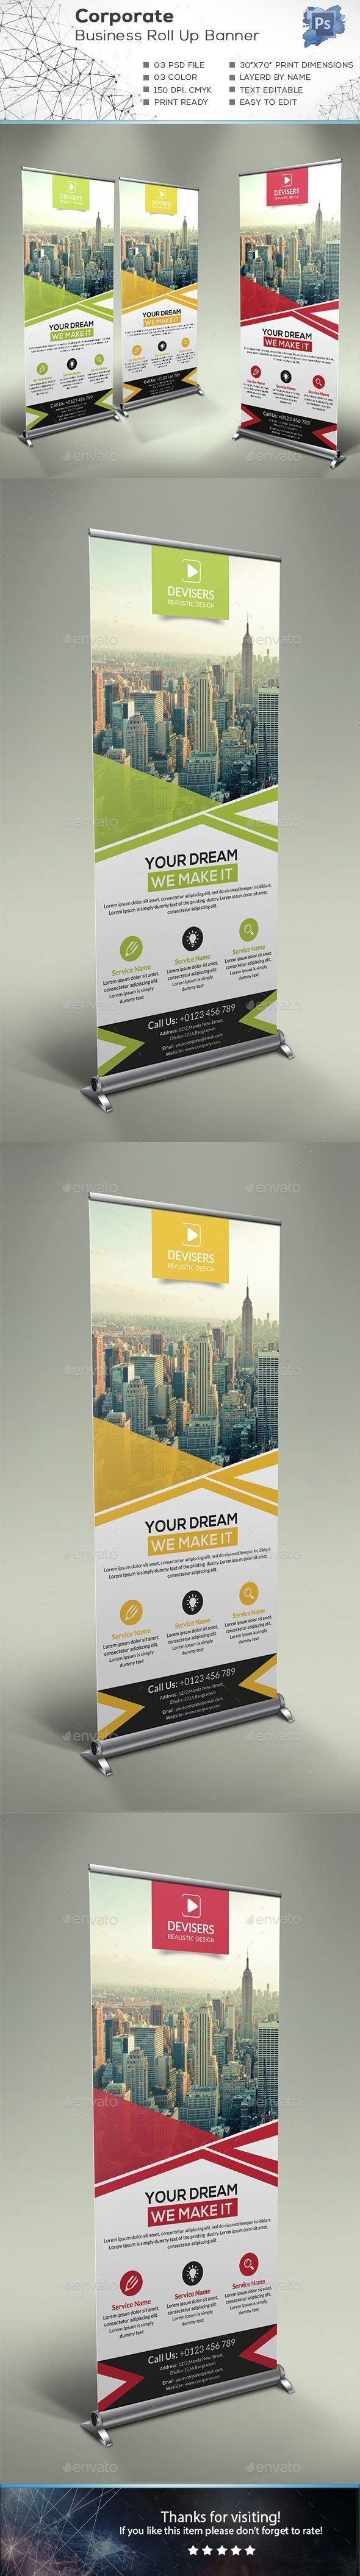 Corporate Business Roll Up Banner Template PSD. Download here: http://graphicriver.net/item/corporate-business-roll-up-banner/14828083?ref=ksioks